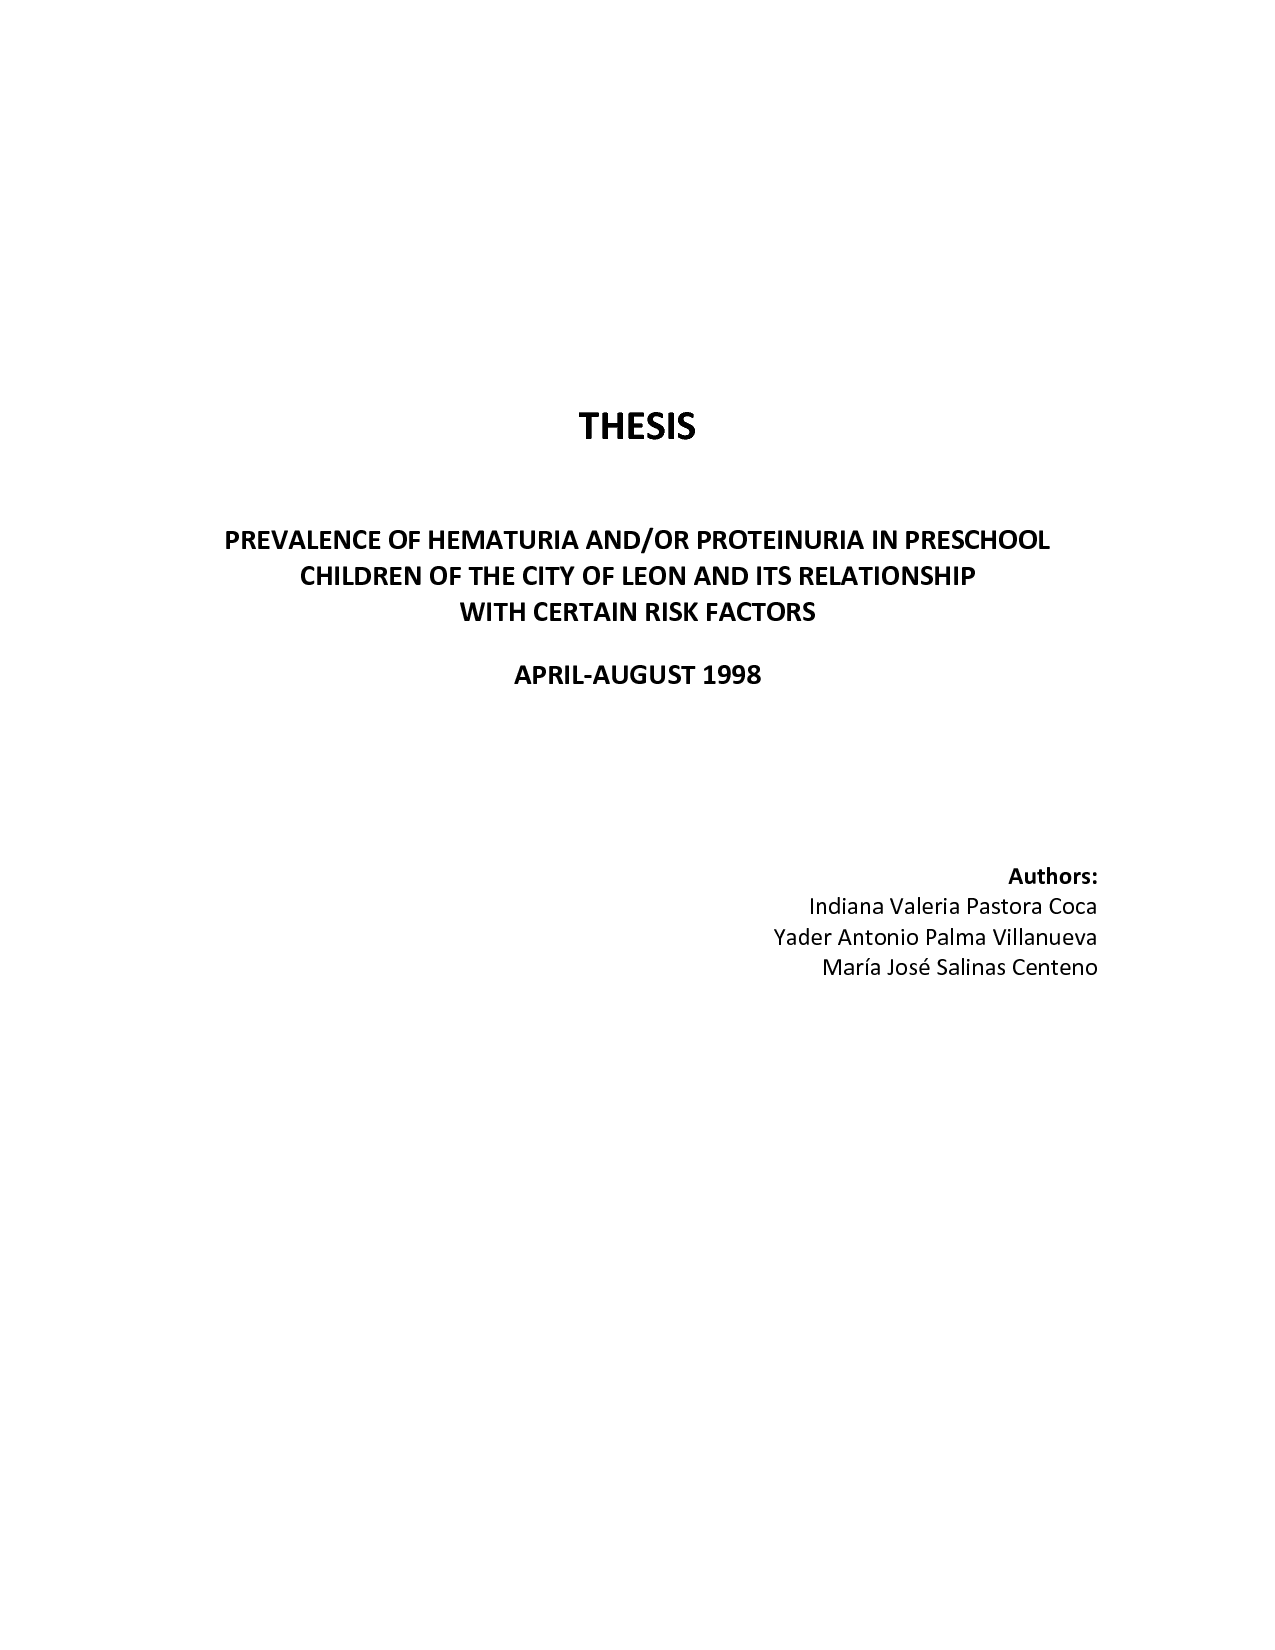 didication for thesis